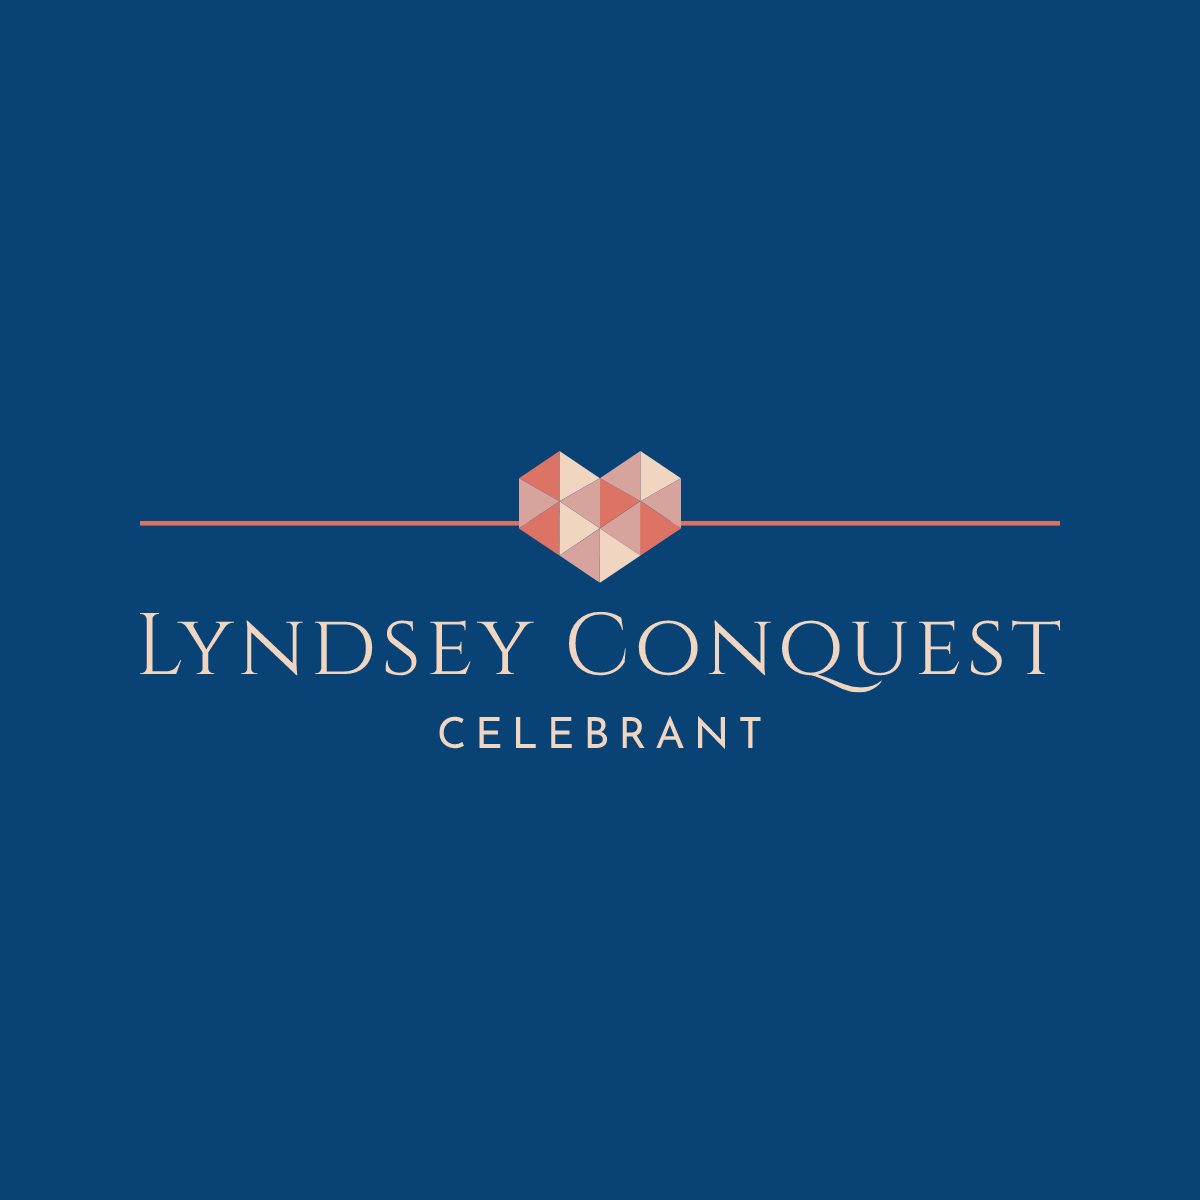 Lyndsey Conquest - Celebrant Services